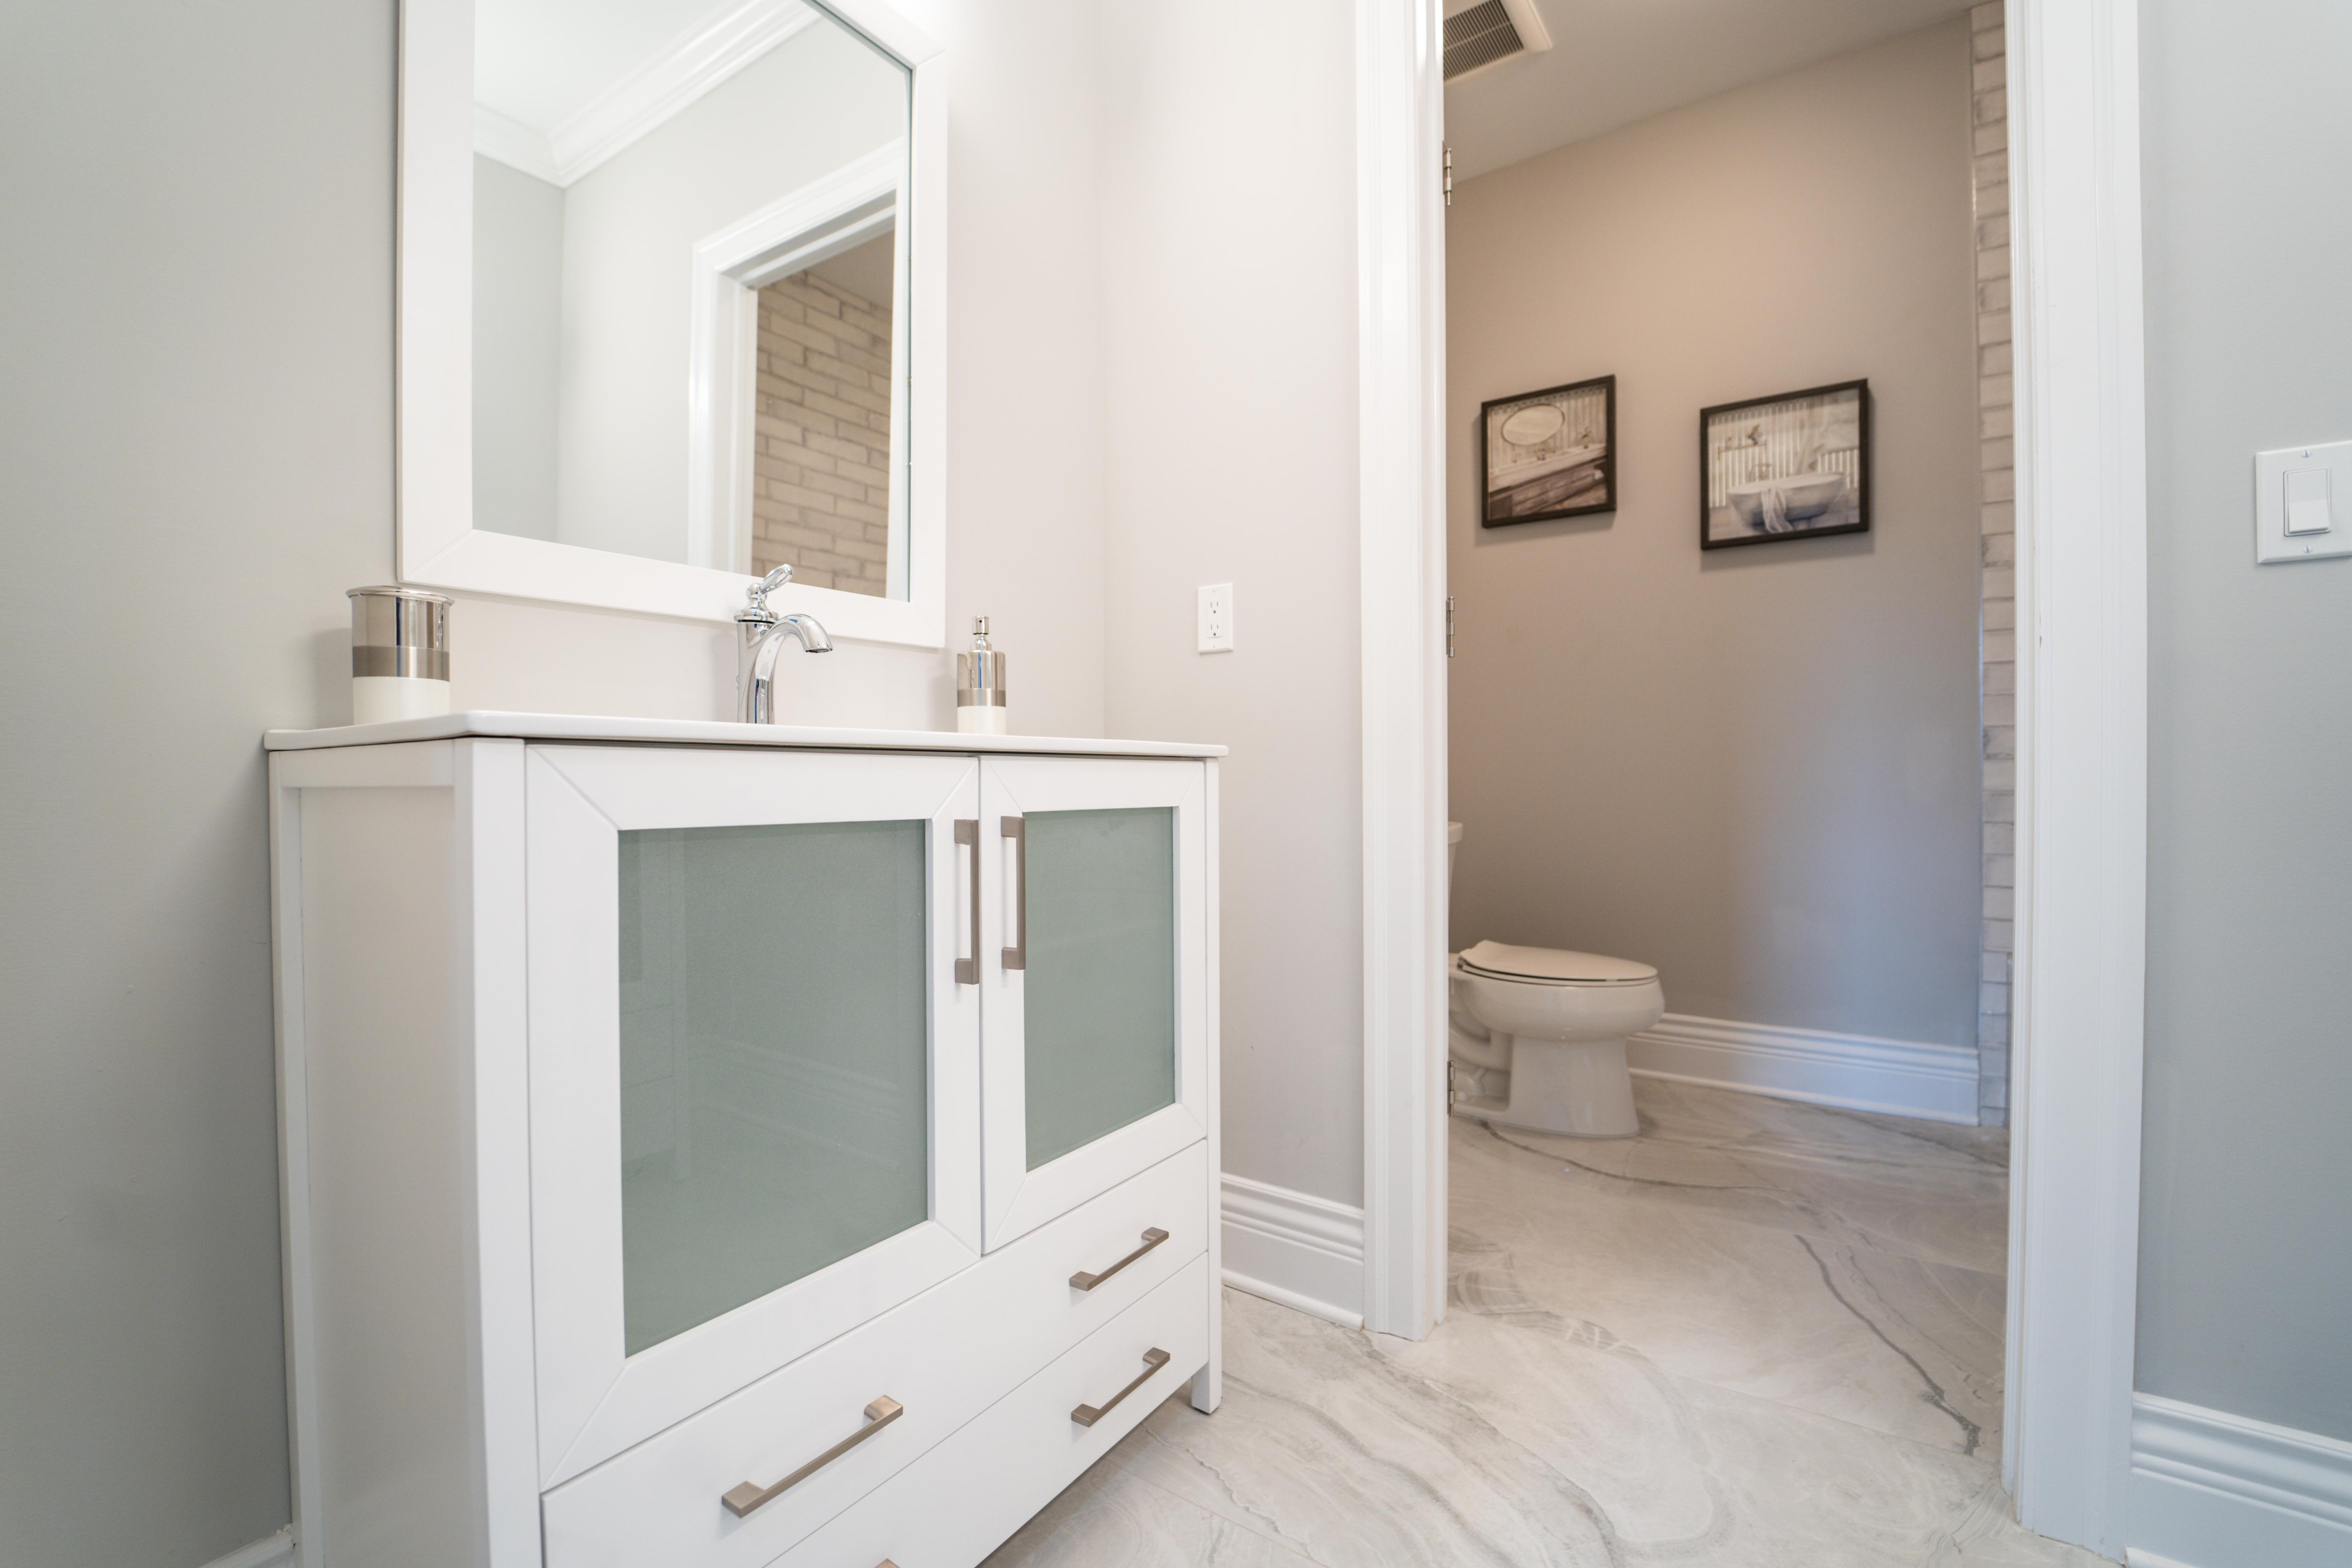 Bathroom featured in the Villa Vizcaya By Paul Anthony Agency in Somerset County, NJ